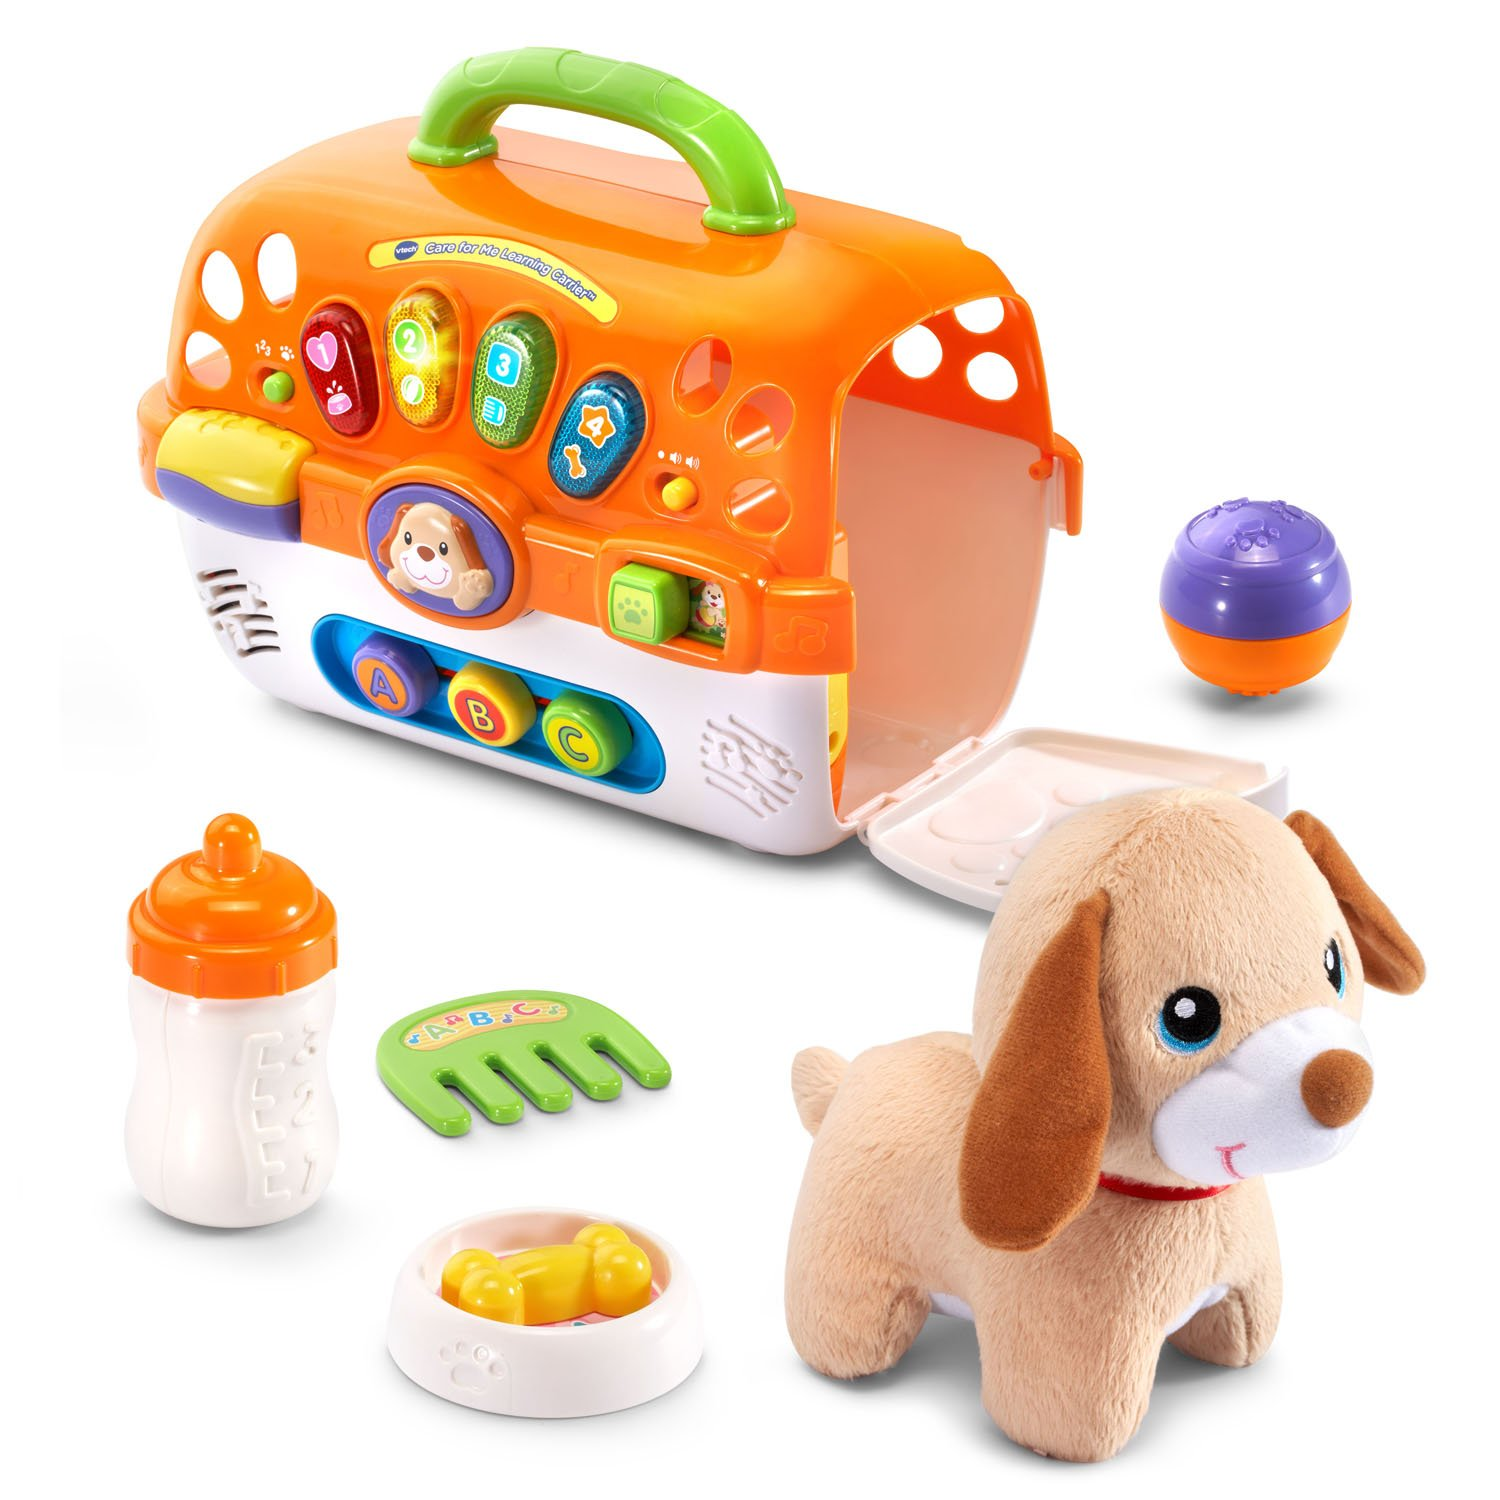 VTech Care for Me Learning Carrier Toy, Orange by VTech (Image #7)